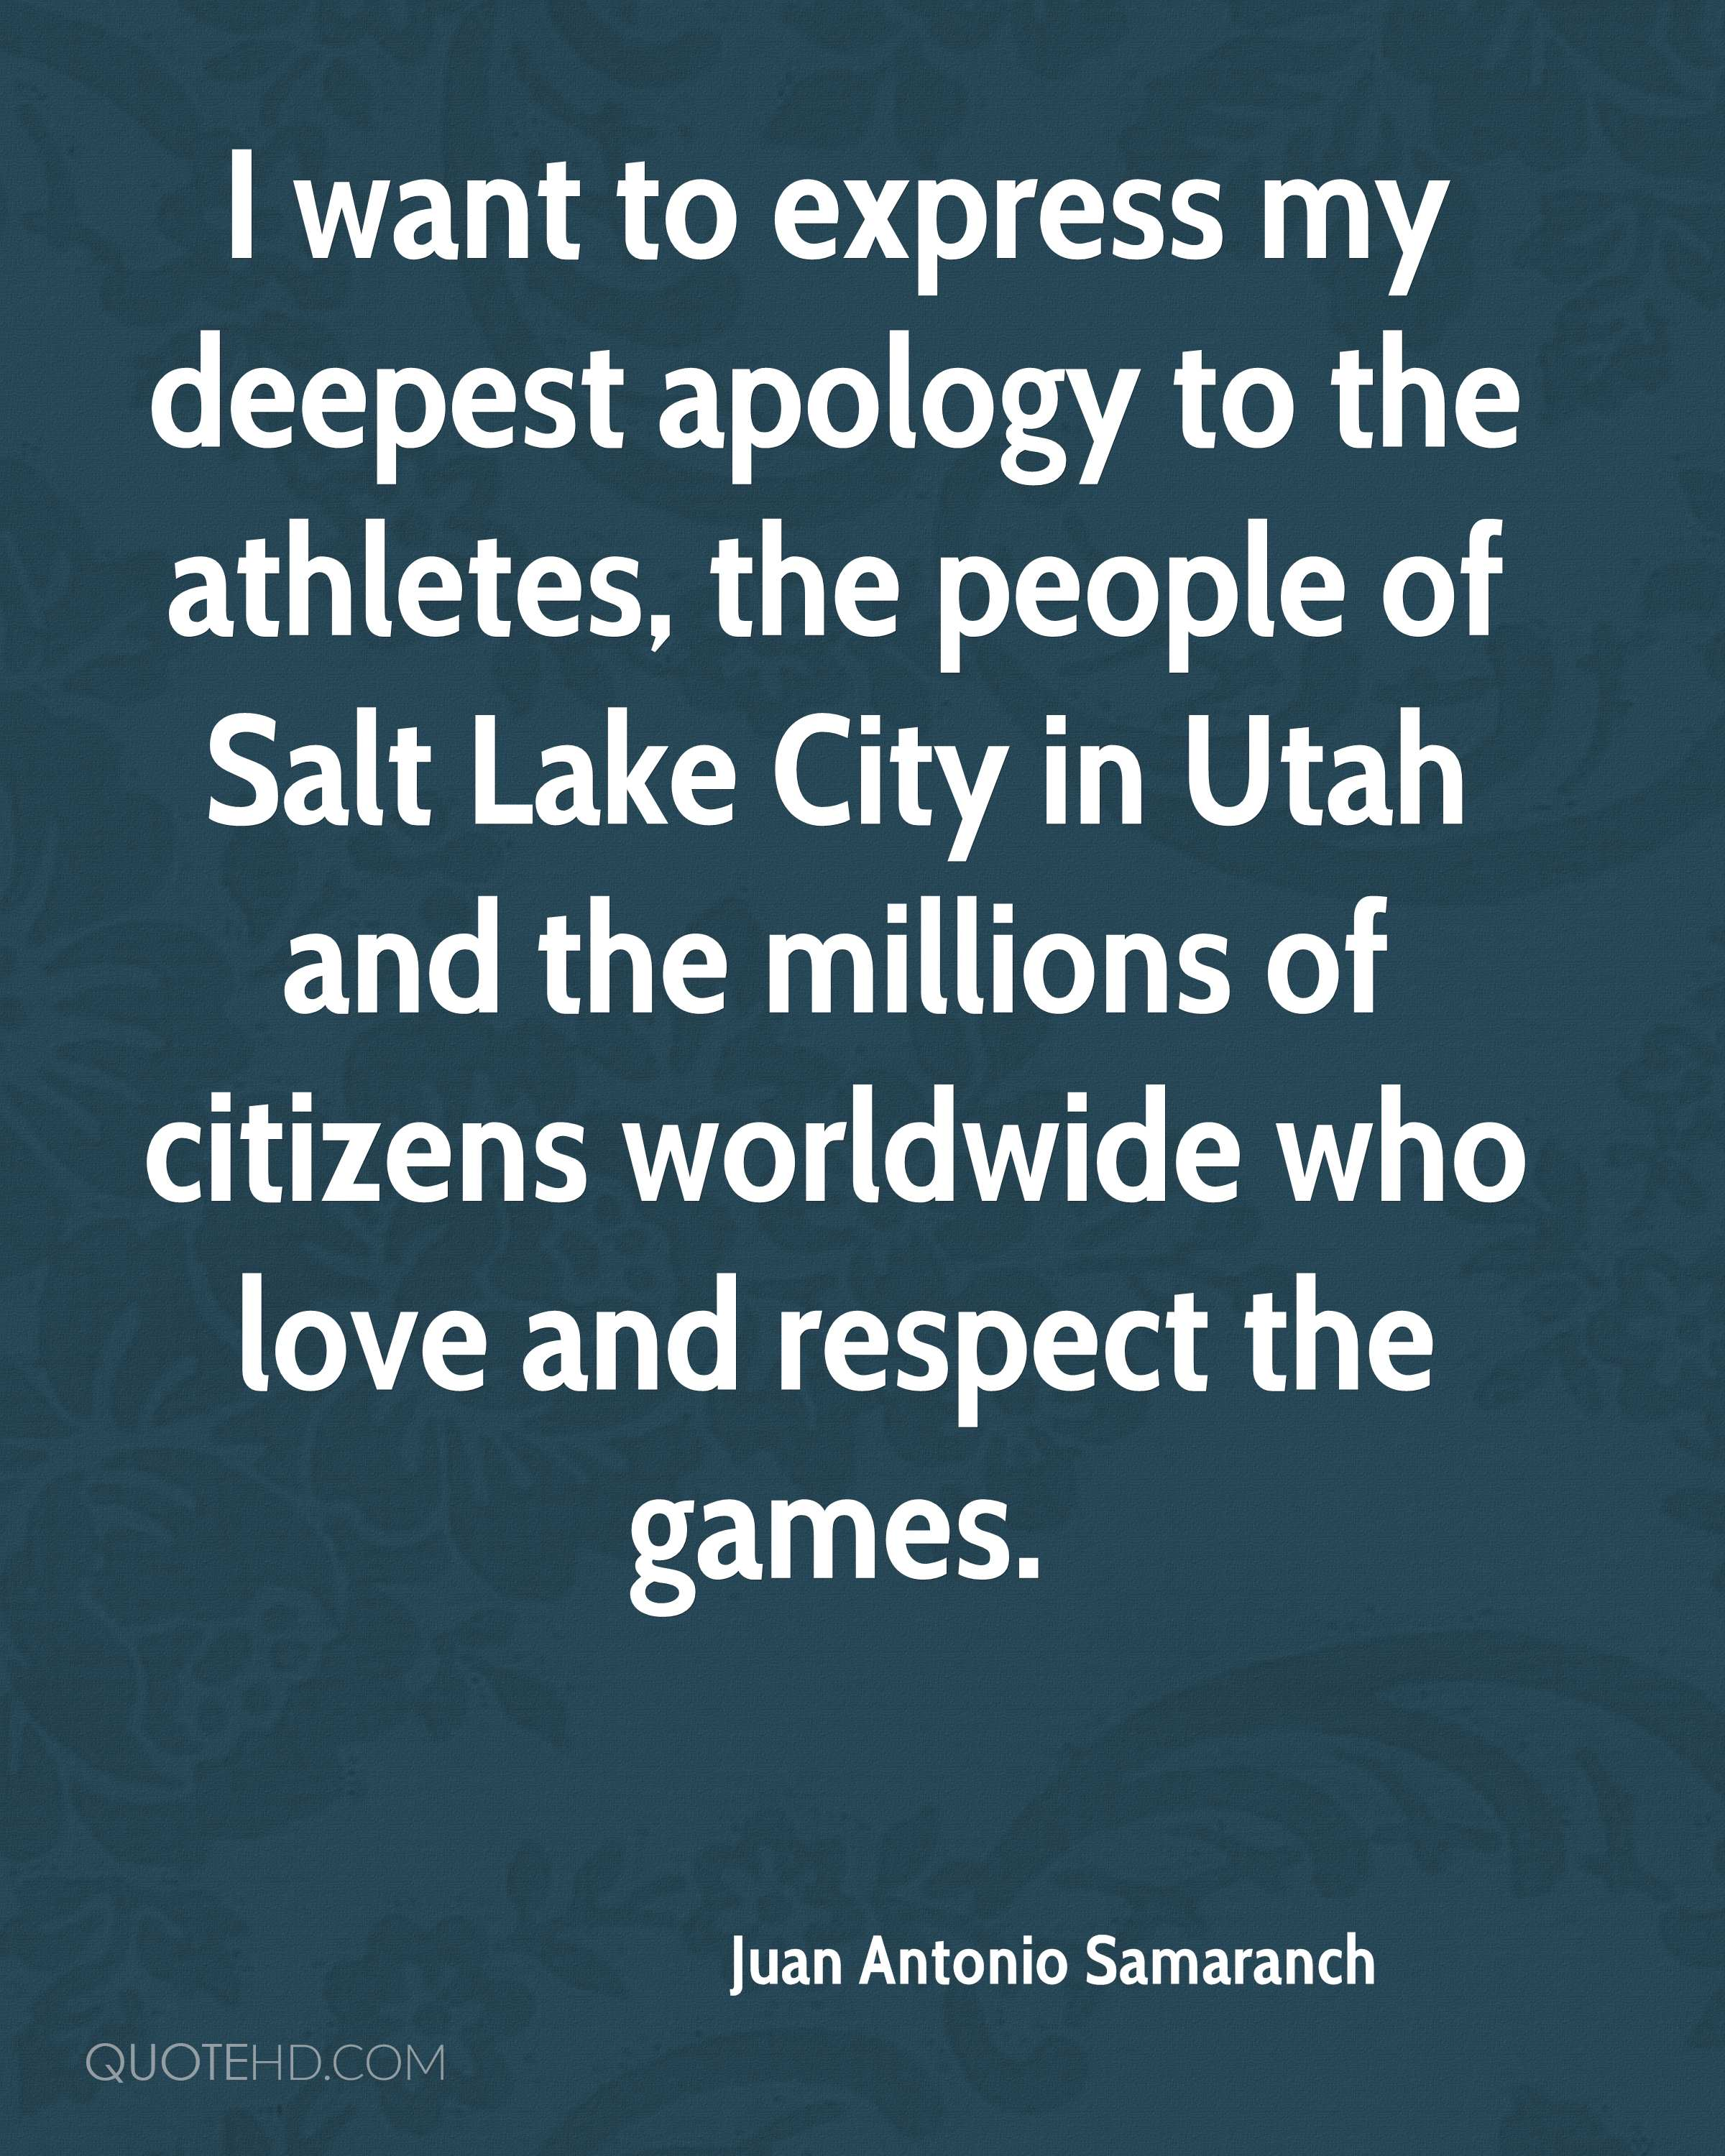 I want to express my deepest apology to the athletes, the people of Salt Lake City in Utah and the millions of citizens worldwide who love and respect the games.